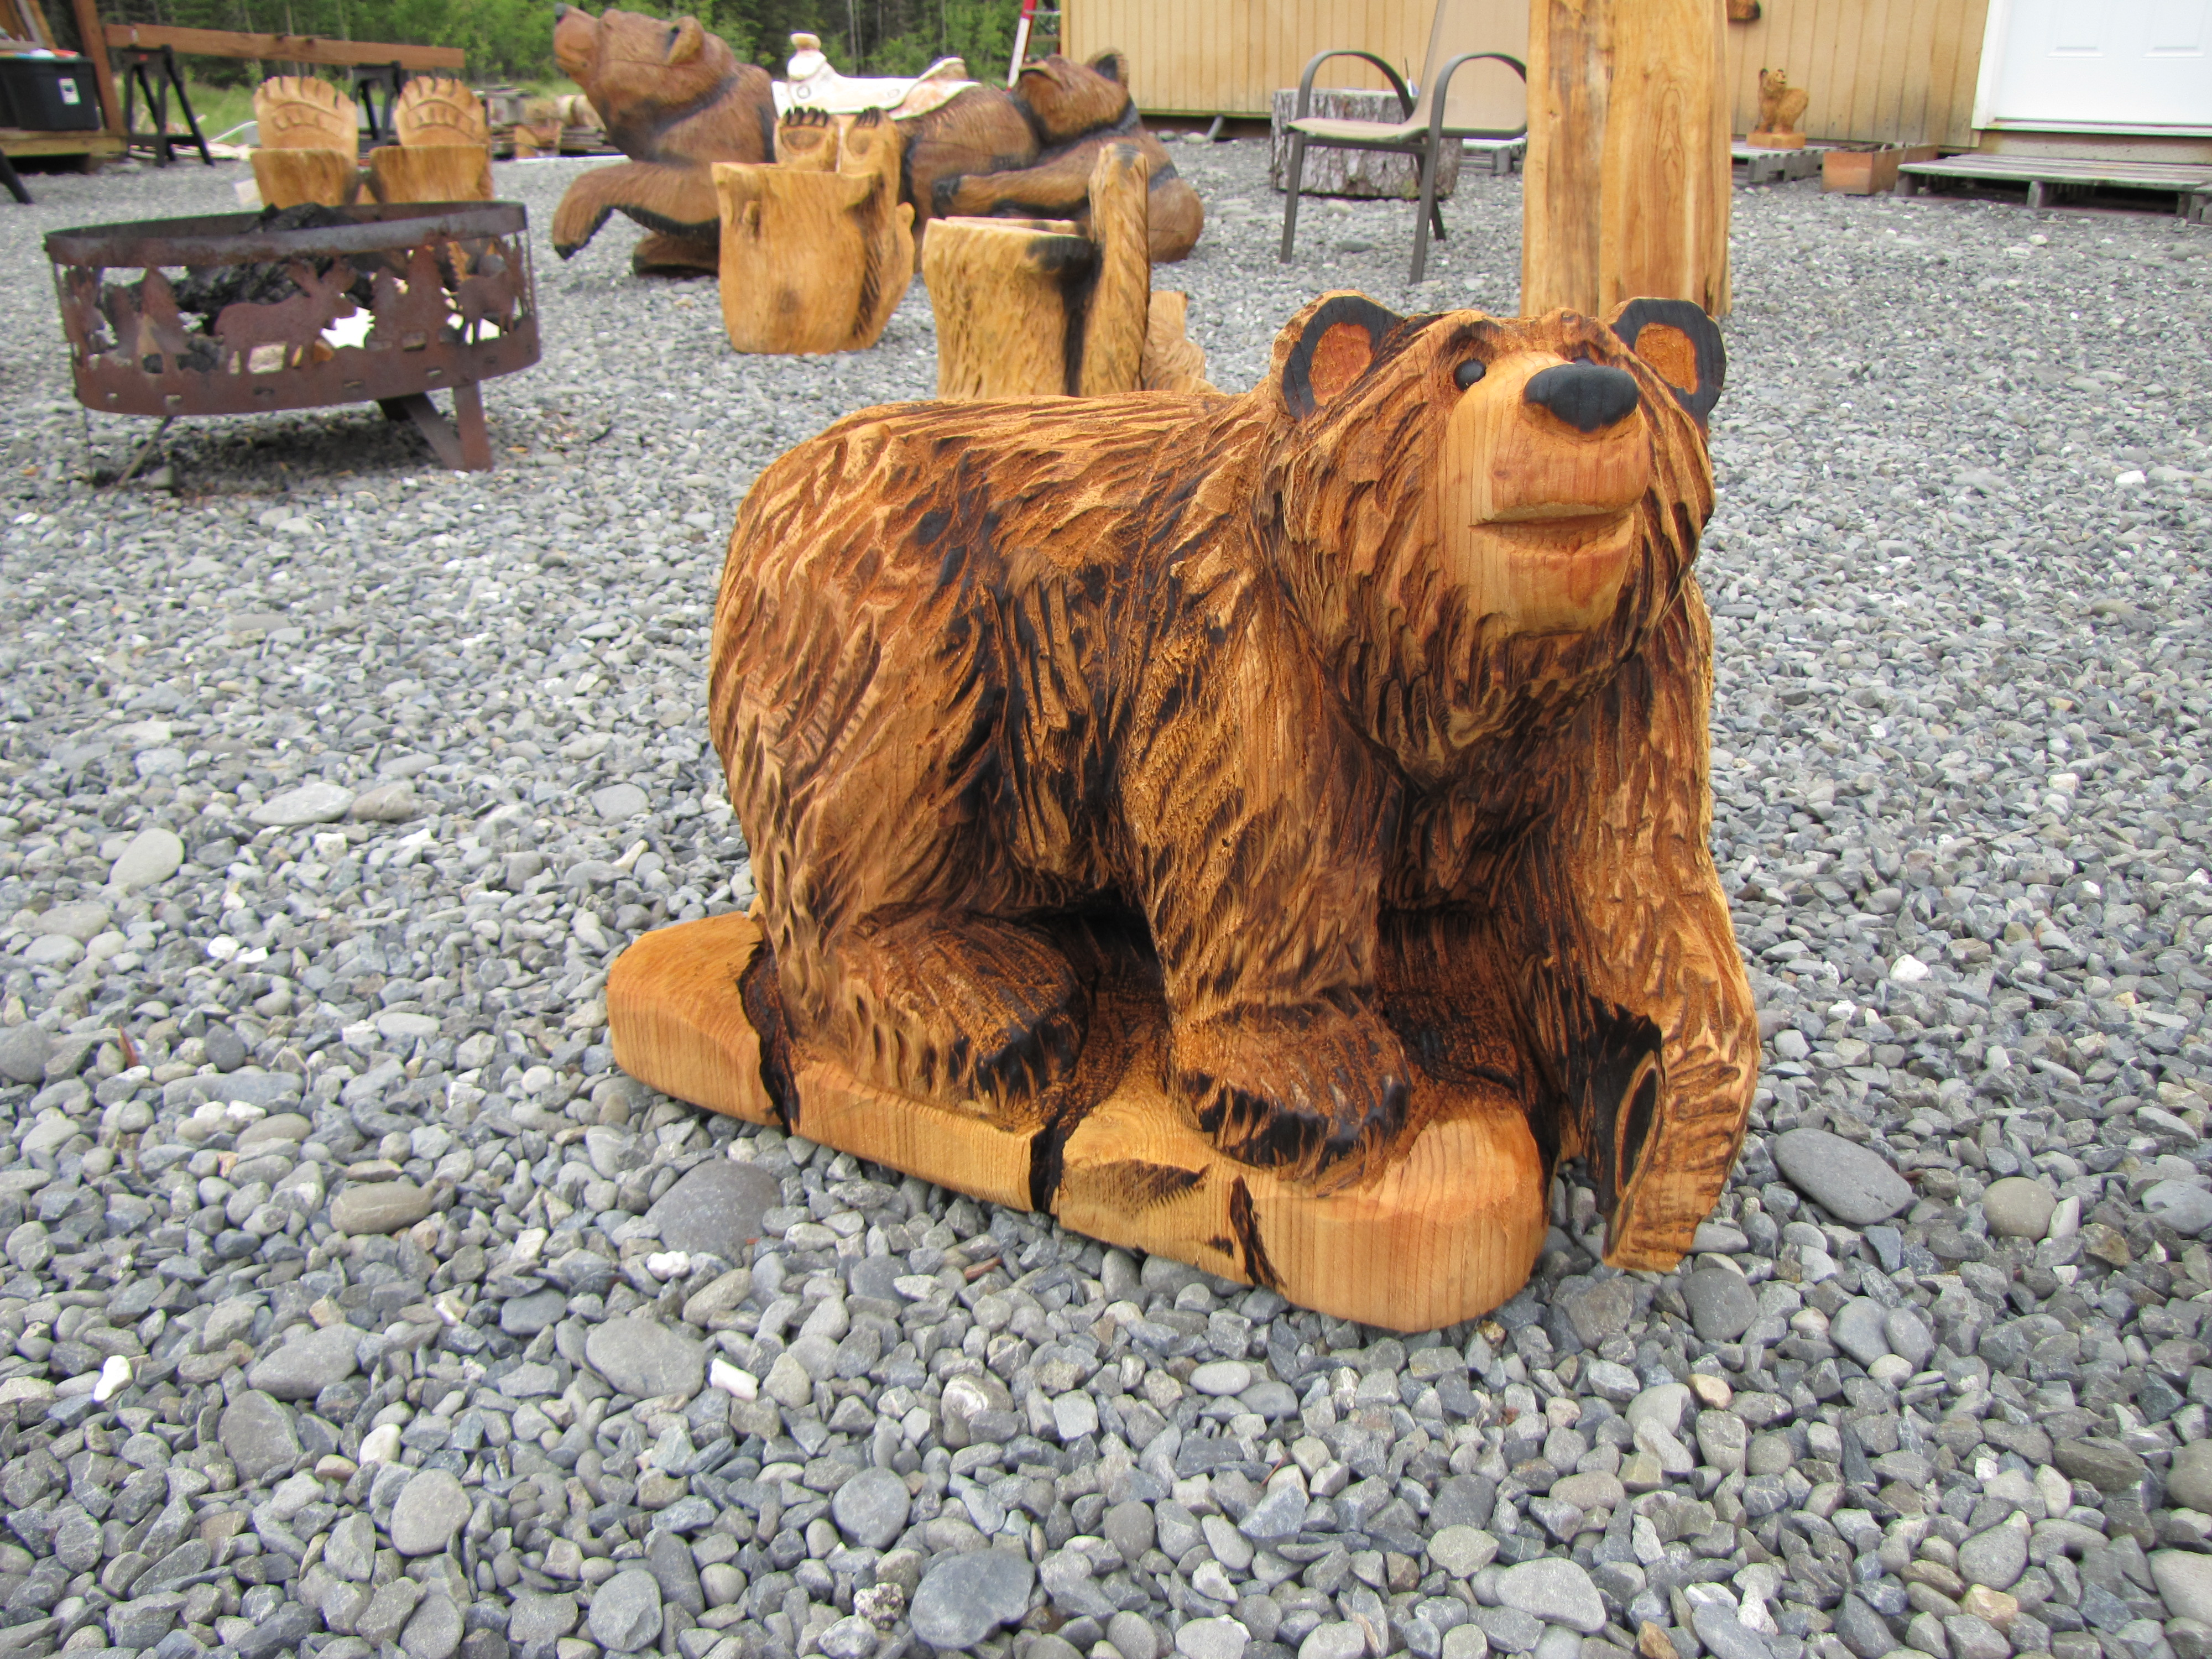 Bears chainsaw carving chain saw sculpture